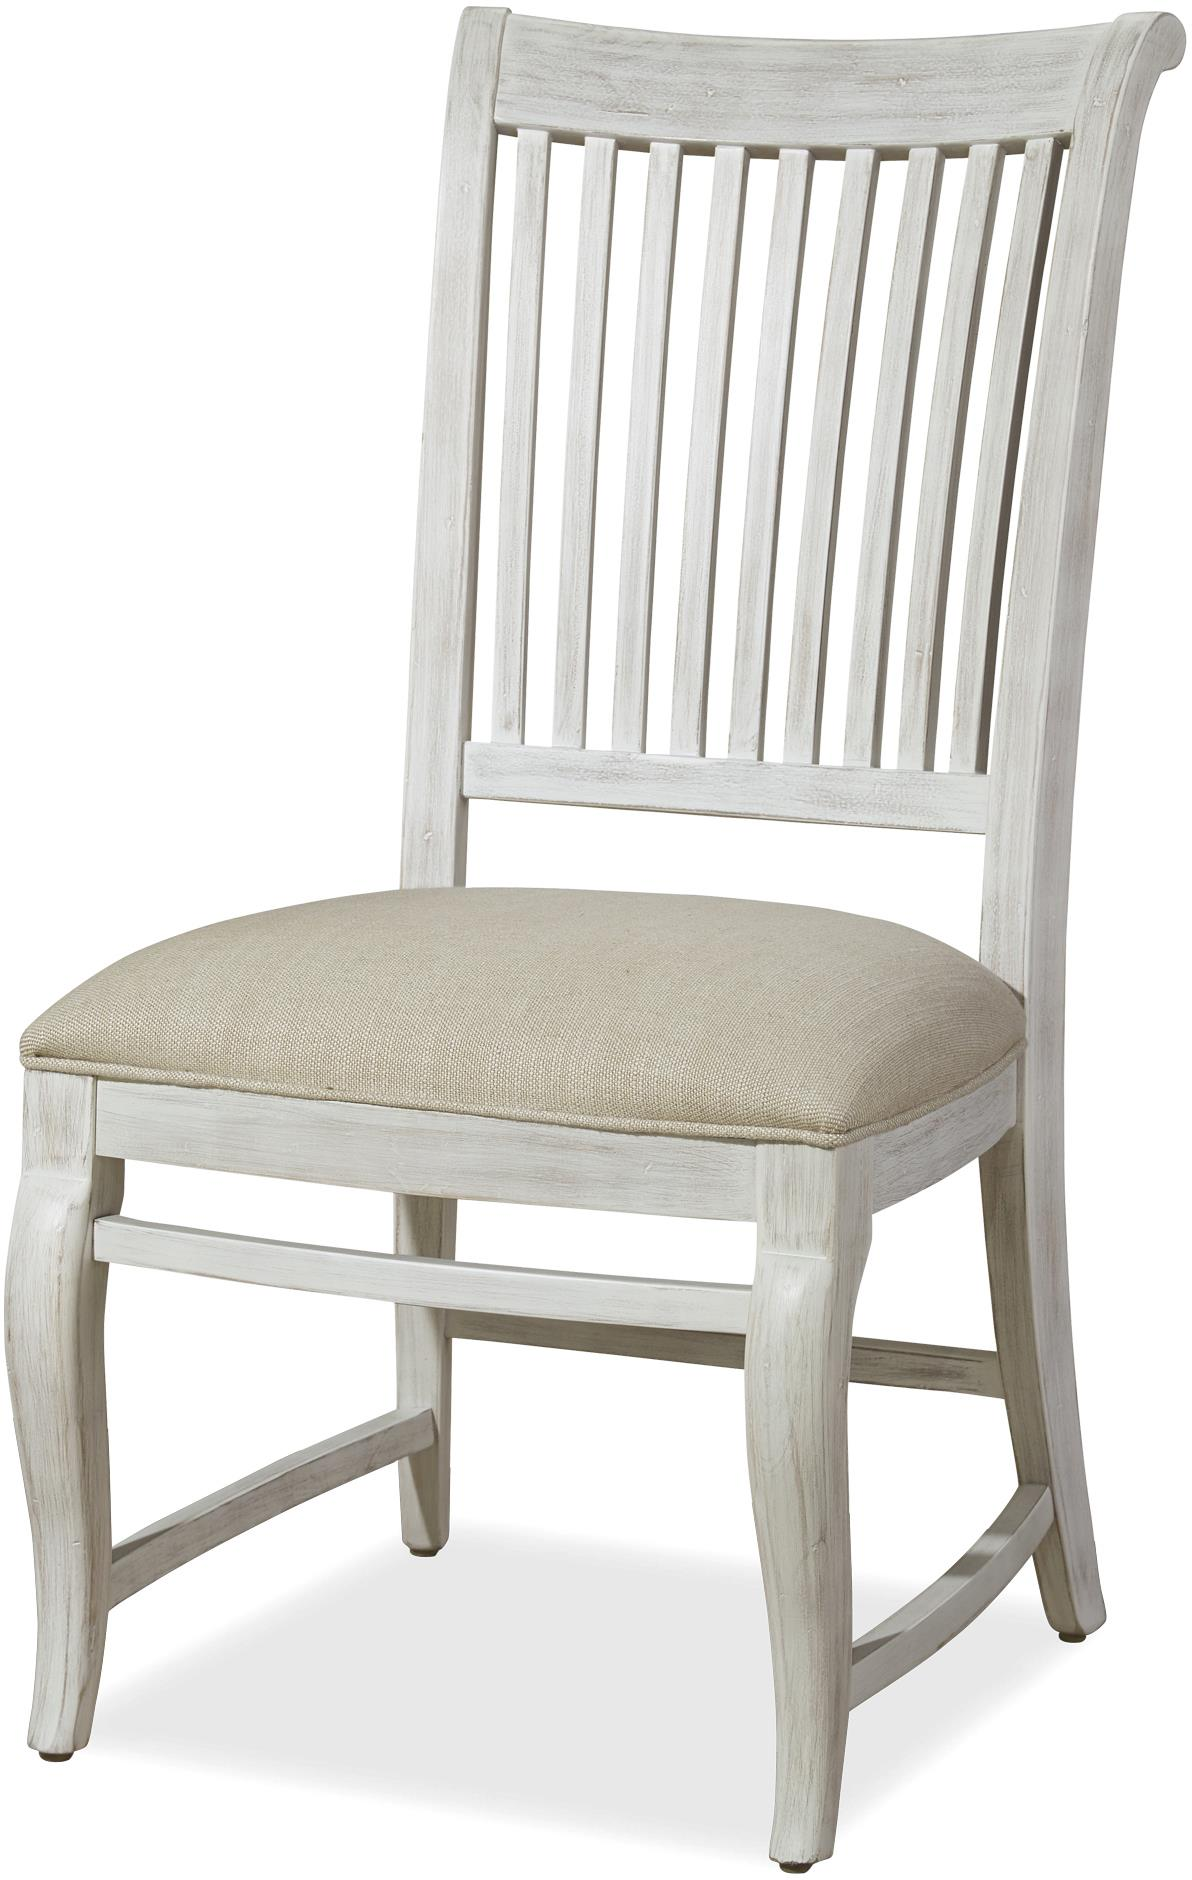 Paula Deen by Universal Dogwood Dogwood Side Chair - Item Number: 597634-RTA